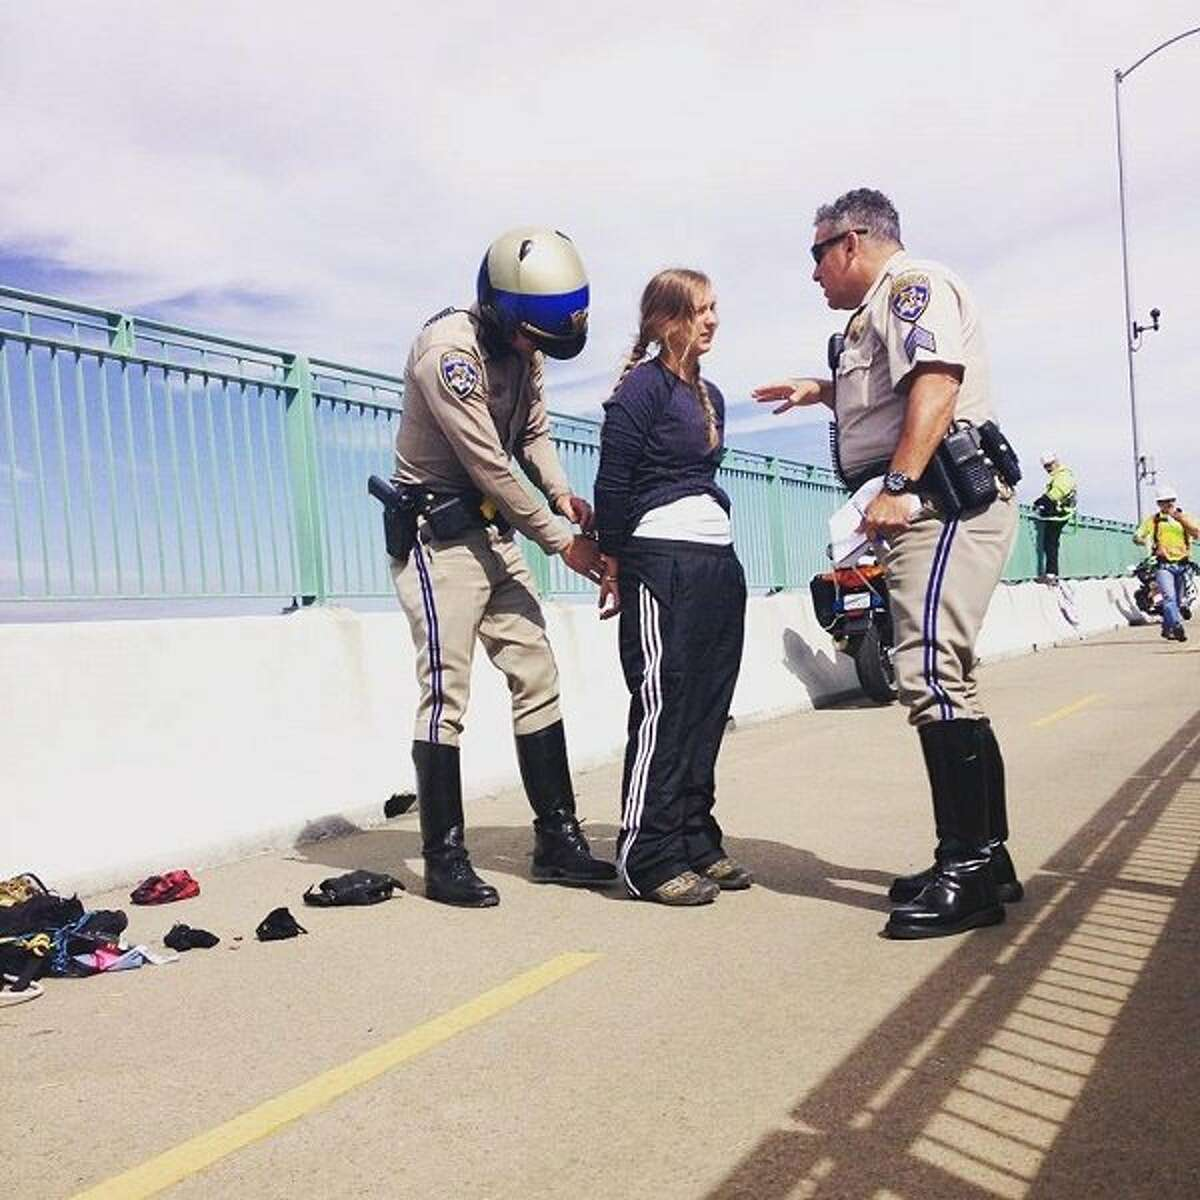 Emily Heffling, of Oakland, is arrested by officers on the Benicia-Martinez railroad bridge on July 6, 2015.